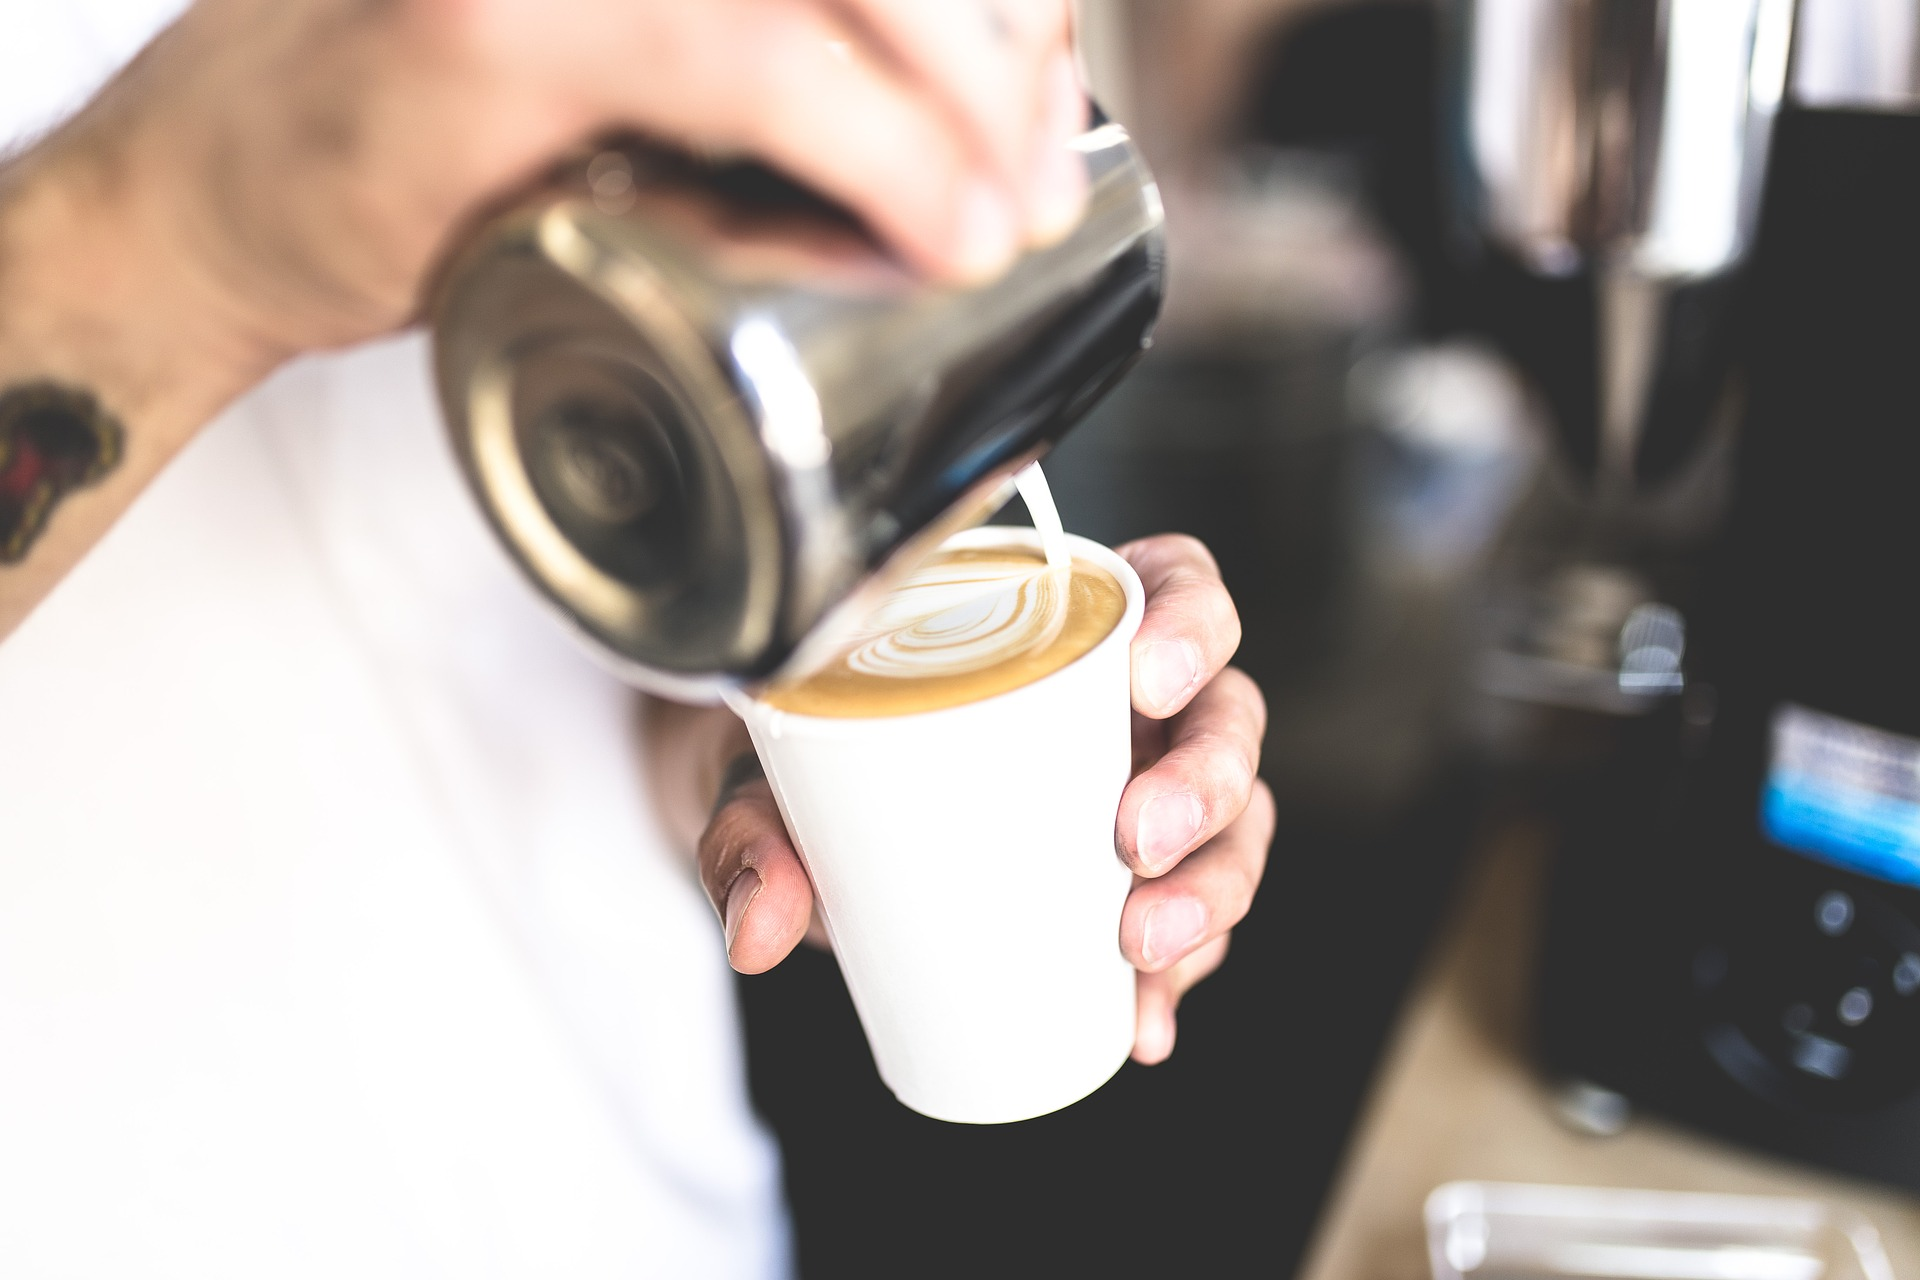 Training - We can help you find baristas and training your staff to craft the best cup of coffee.